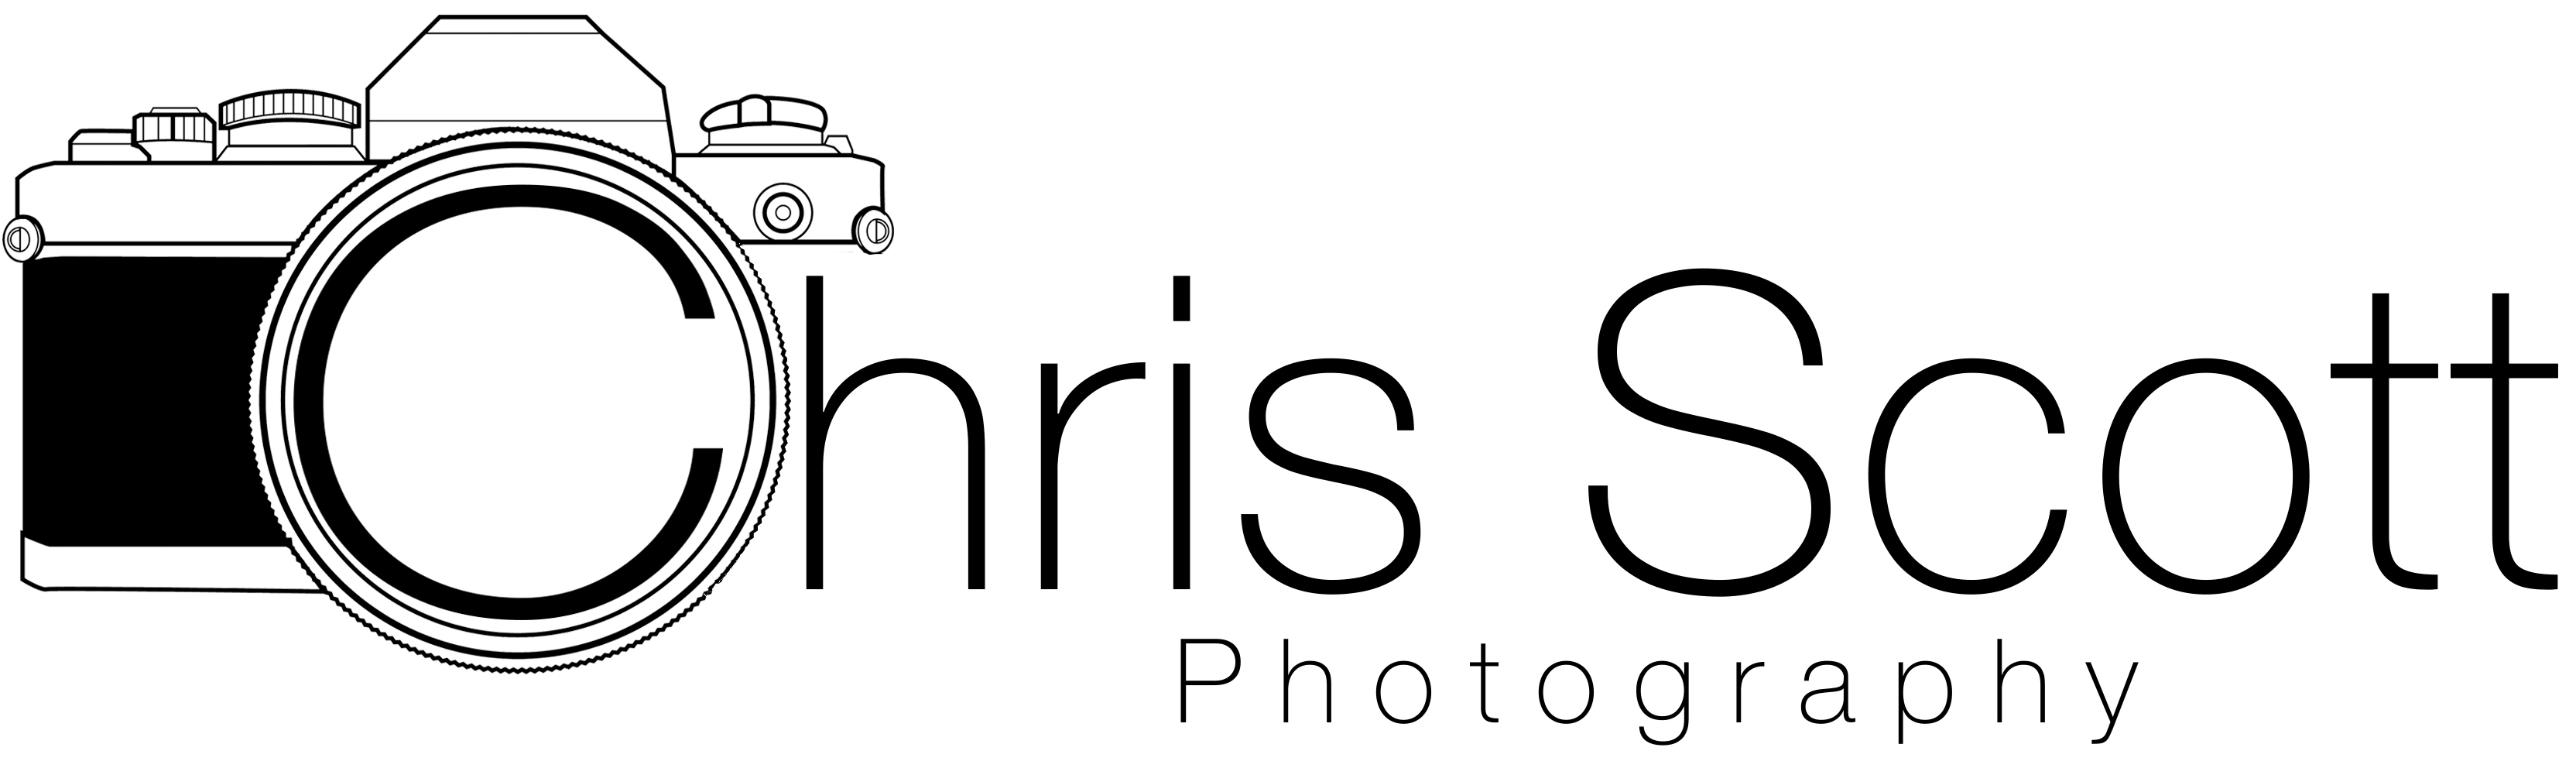 Chris Scott Photography Dundee